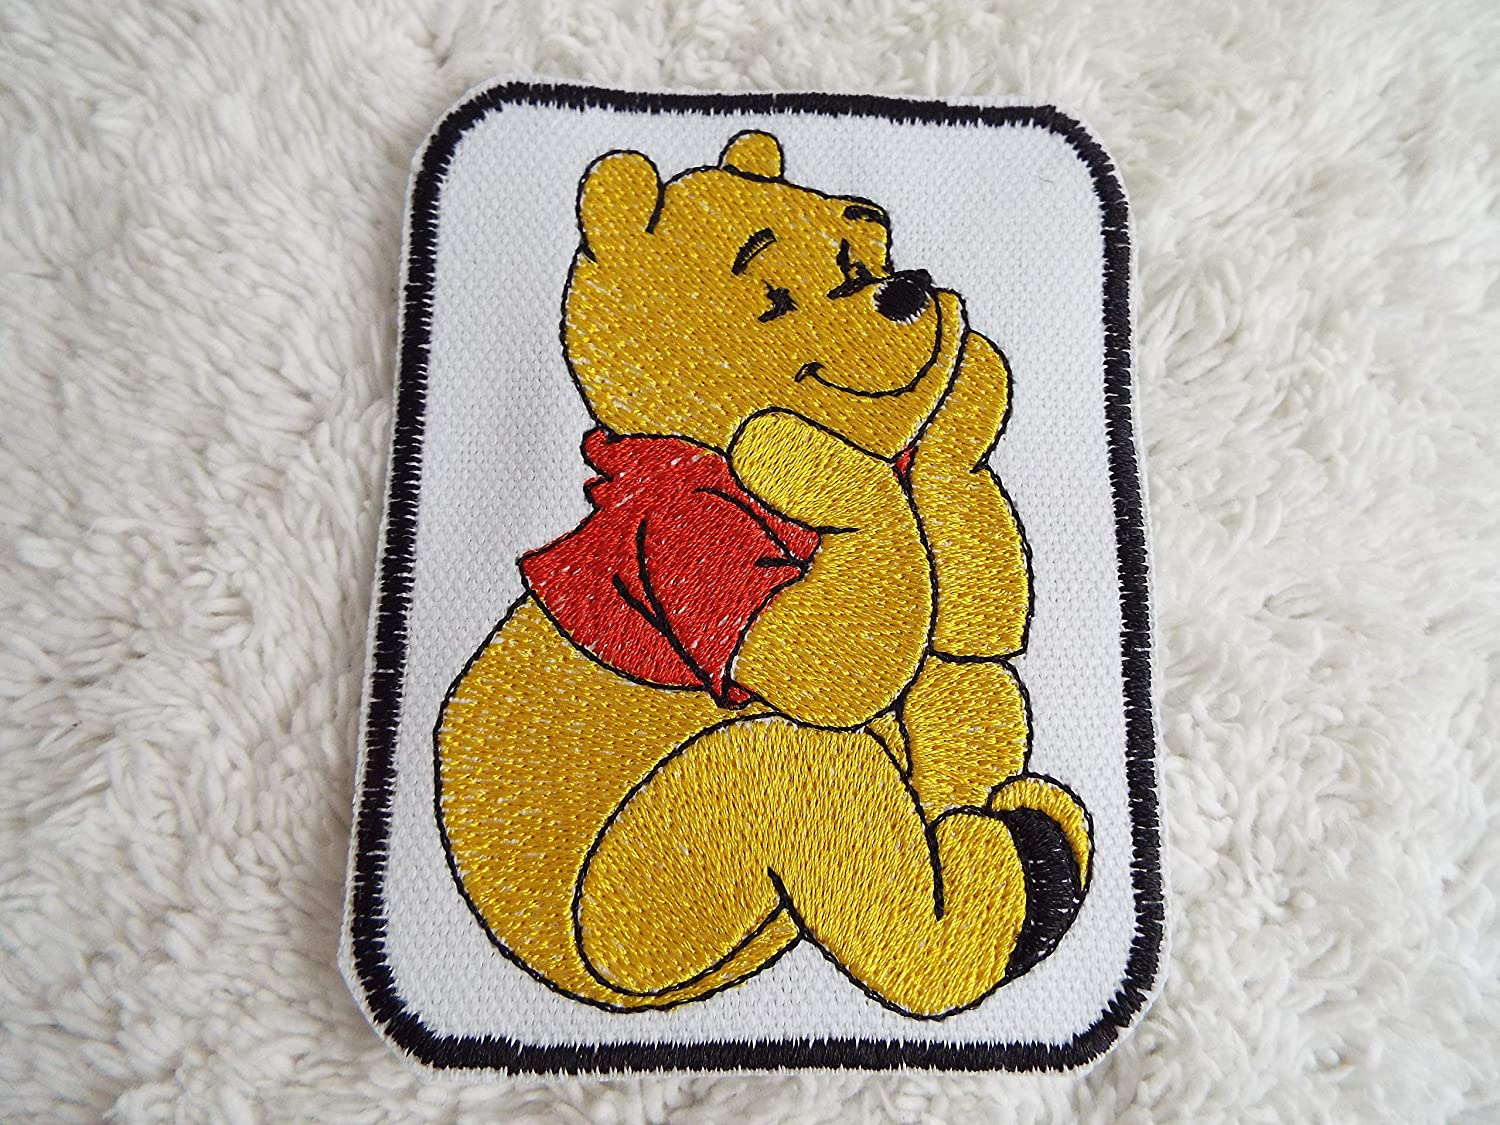 Gold Regular dealer Pooh Bear Embroidered On Iron Patch Cheap mail order sales